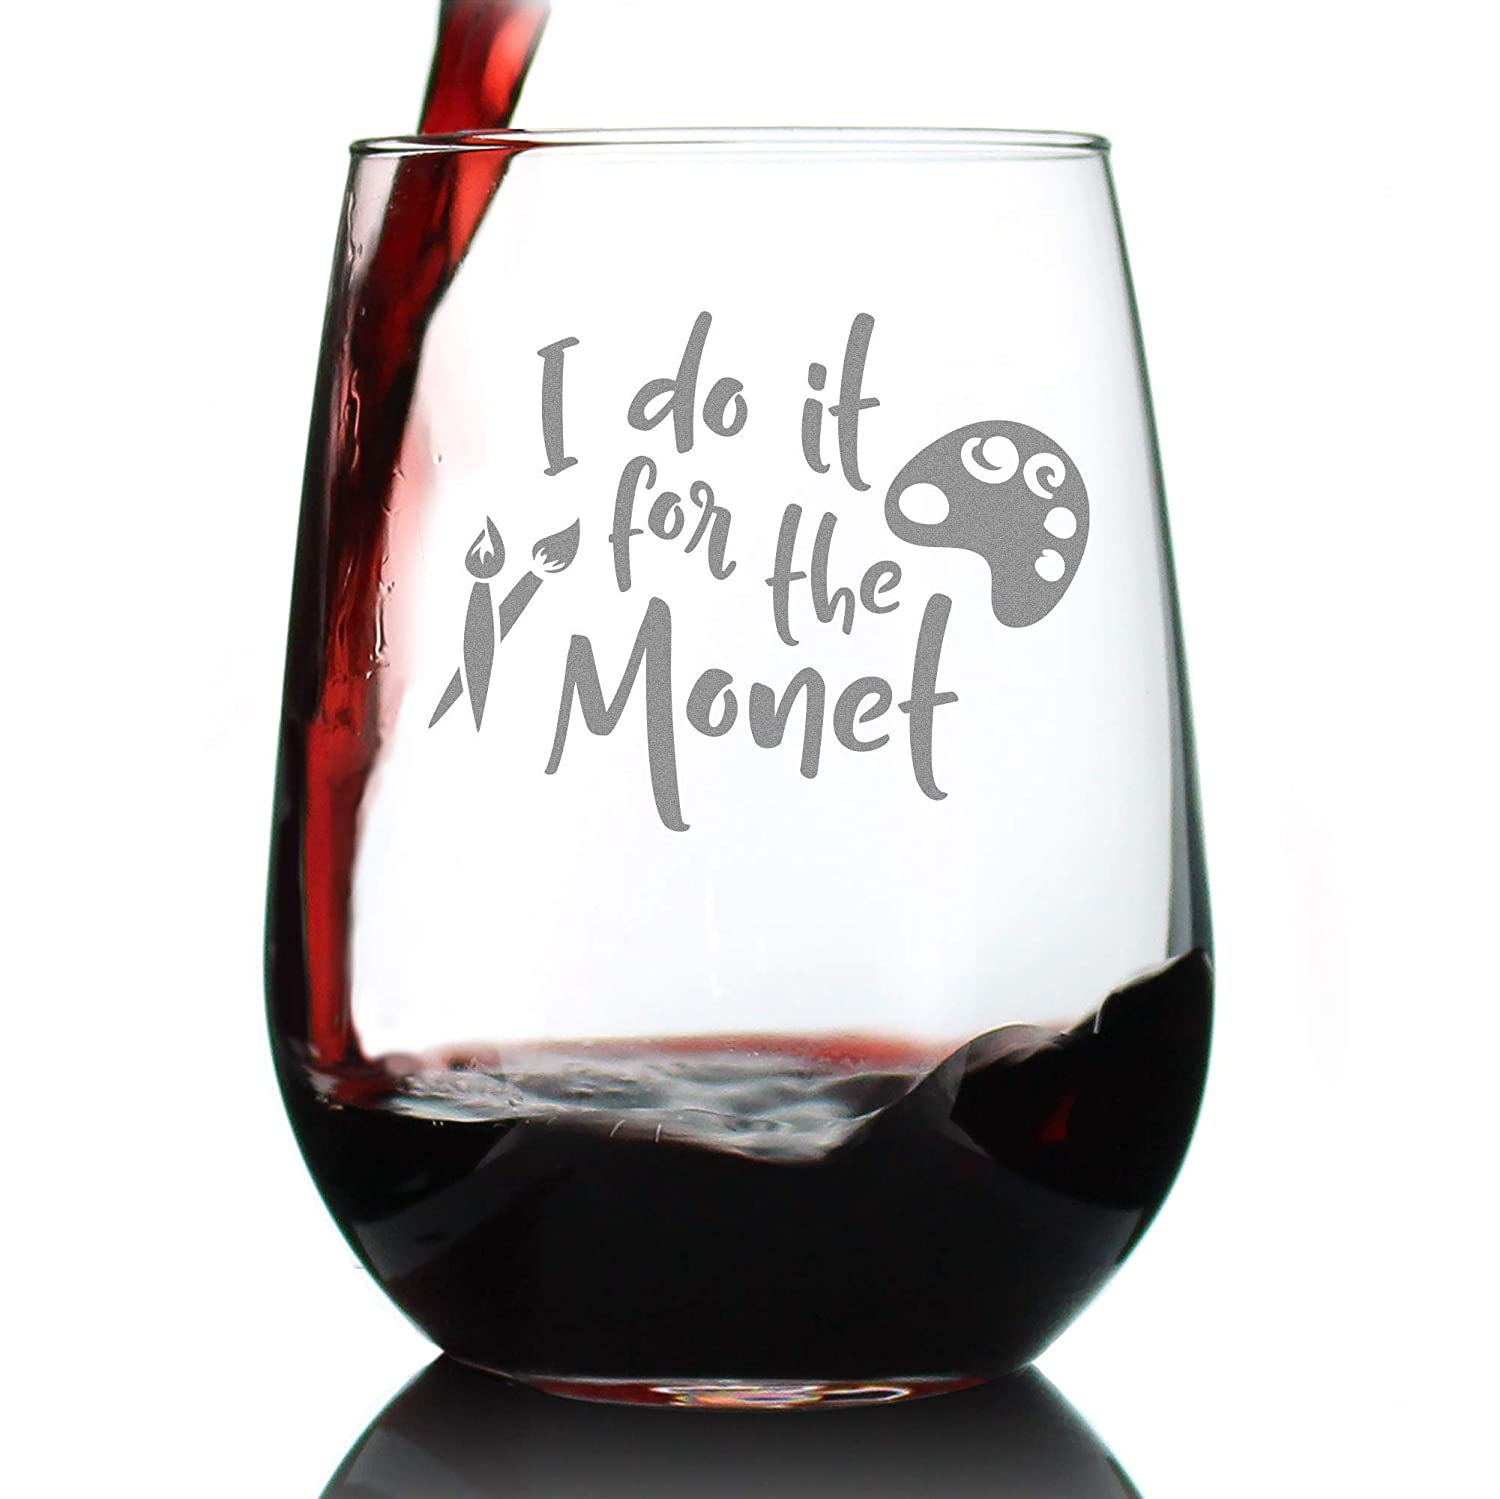 For the Monet – Stemless Wine Glass Gifts - Funny T Spring new work one Finally resale start after another for Art